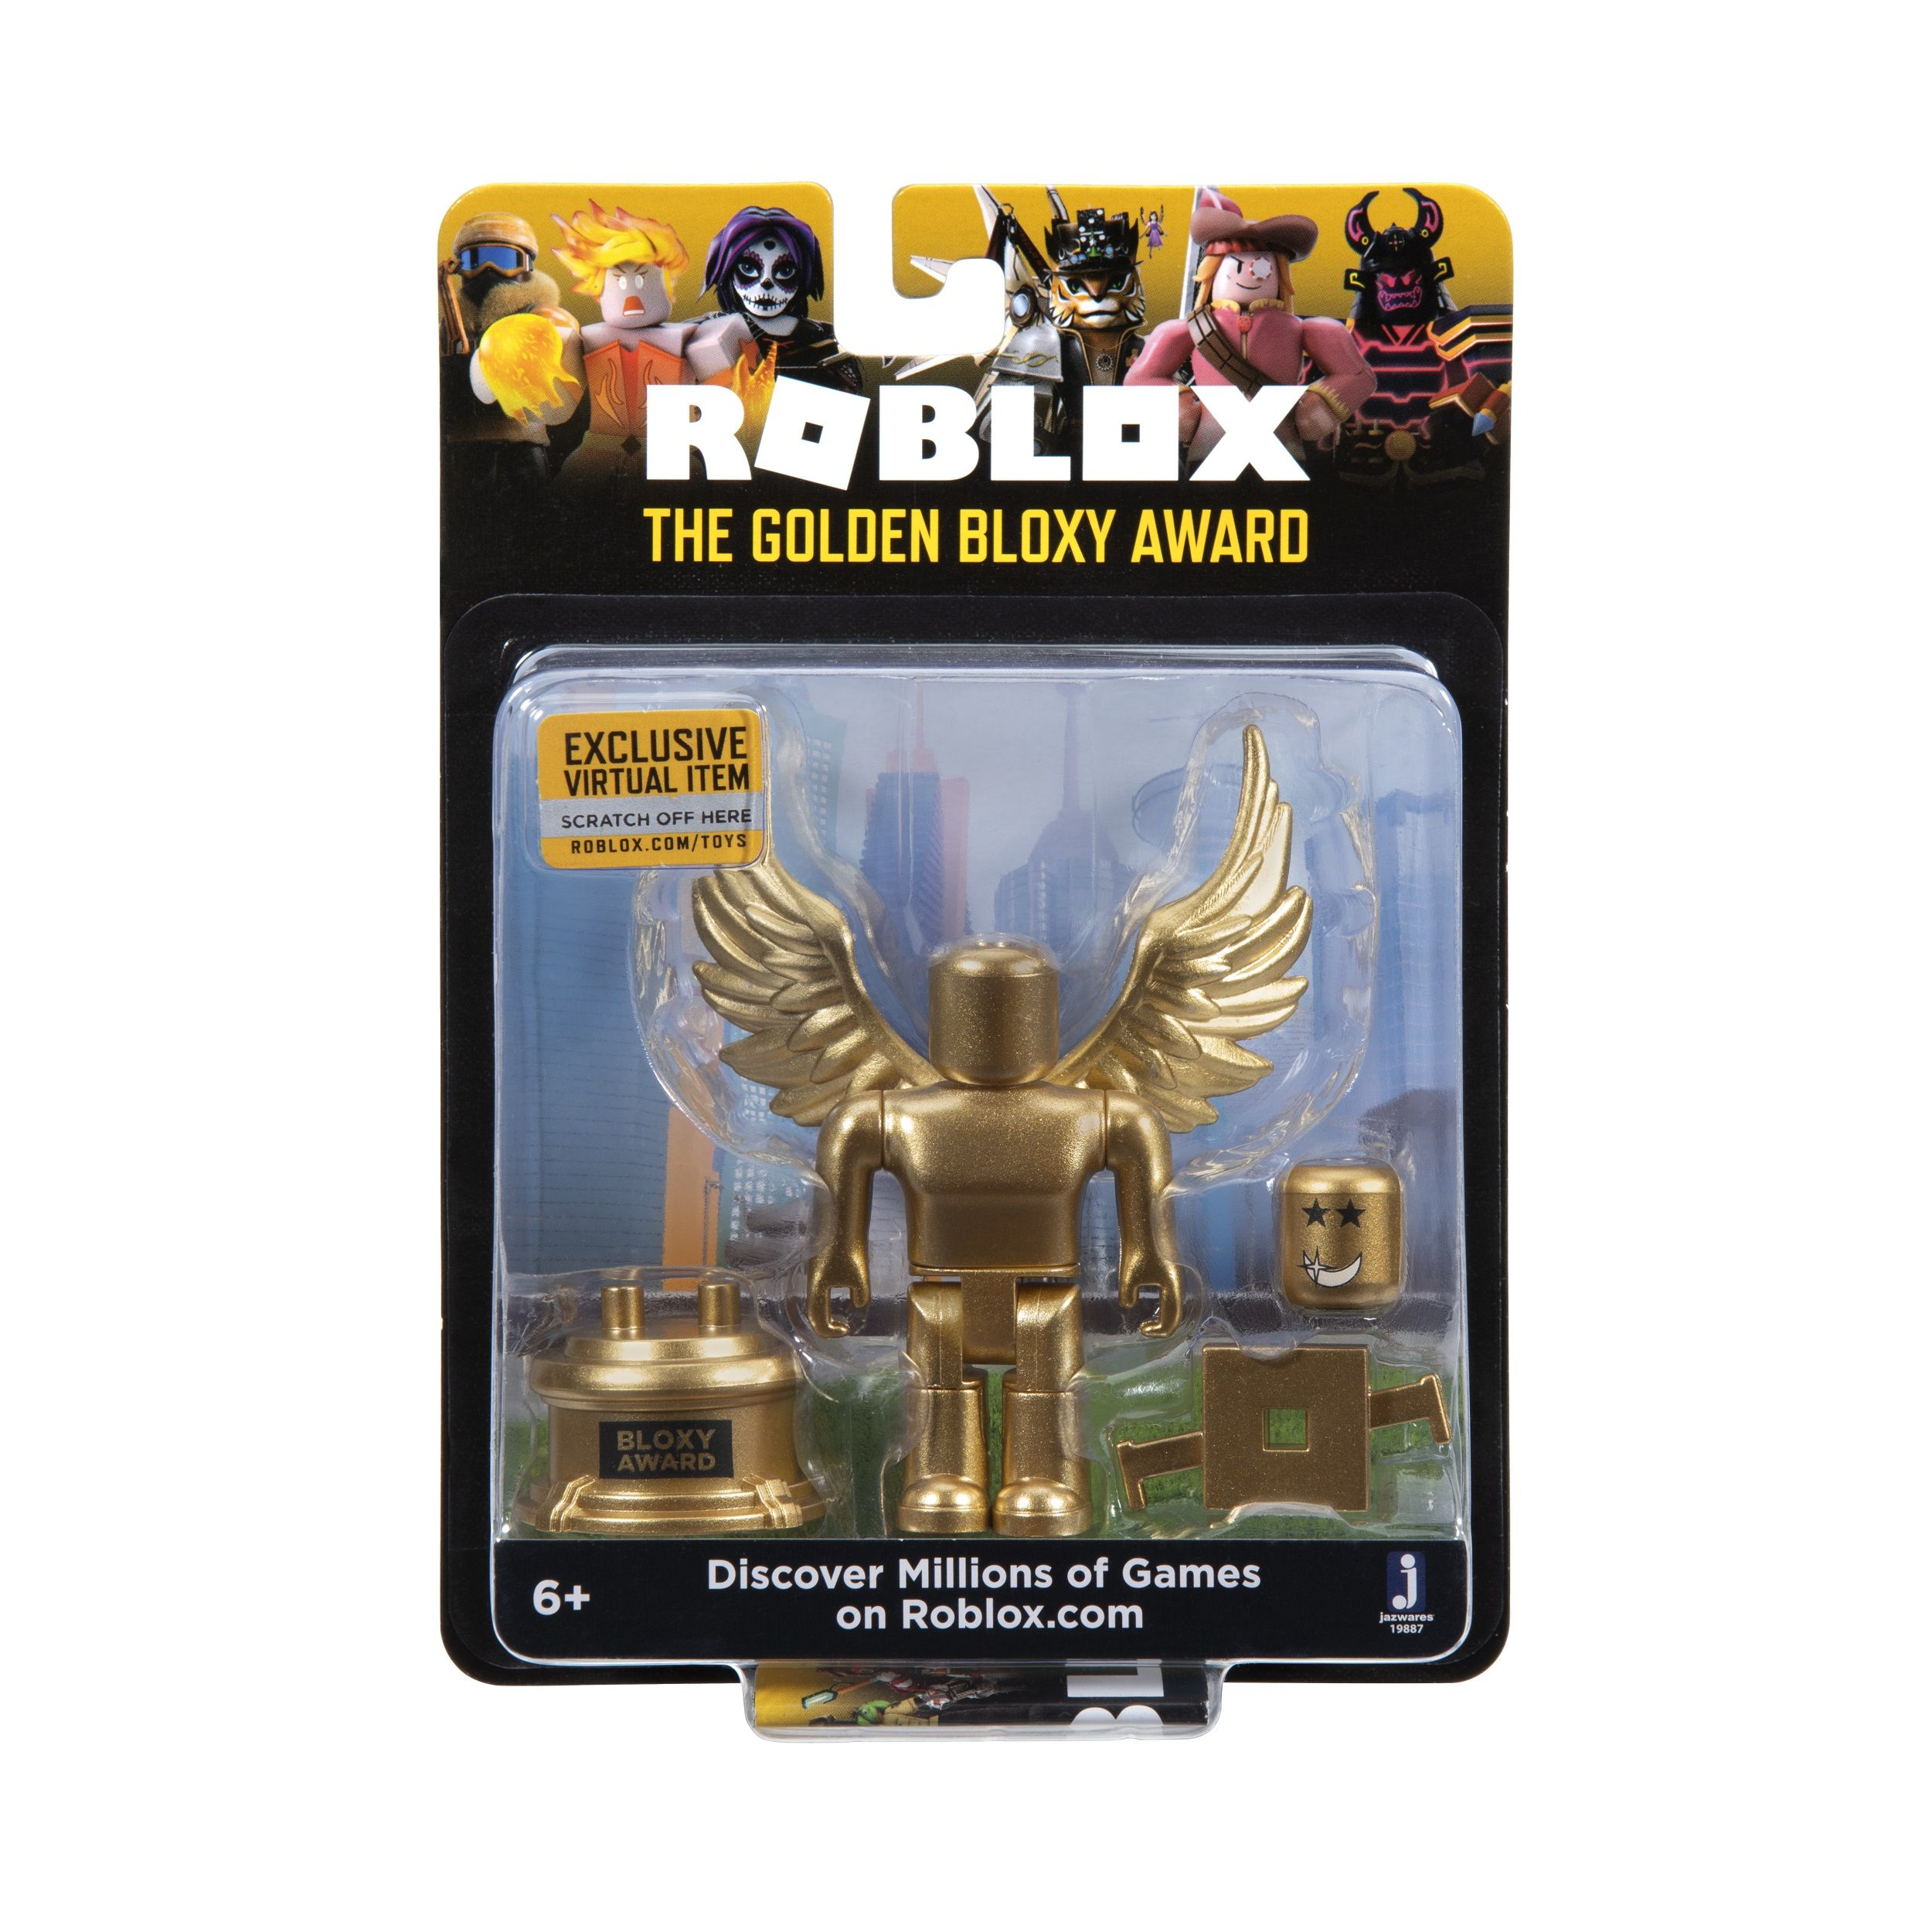 Roblox Celebrity Collection The Golden Bloxy Award Figure Pack Includes Exclusive Virtual Item Walmart Com In 2020 Roblox The Incredibles Awards